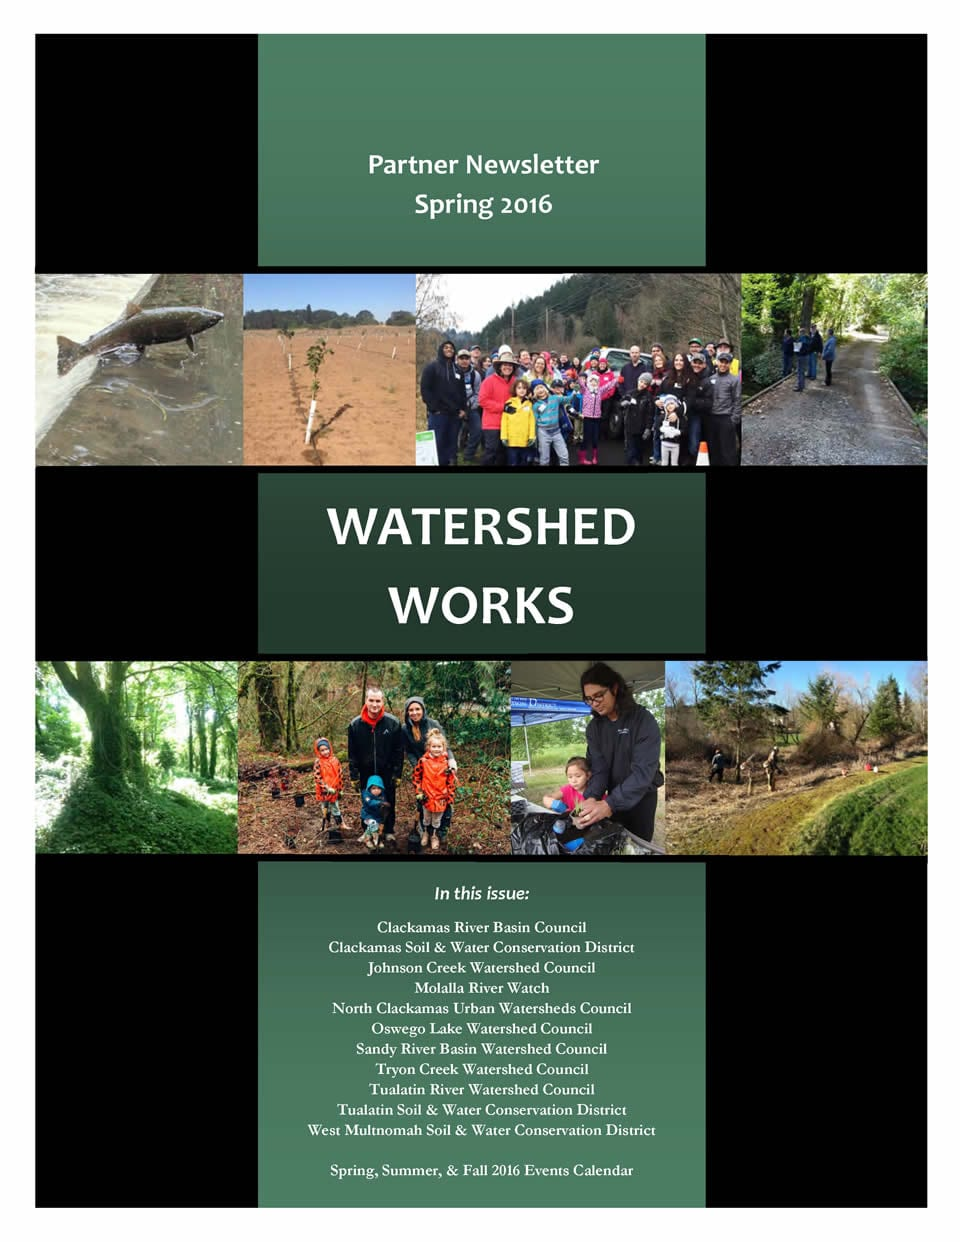 WATERSHED WORKS Spring 2016 Partner Newsletter